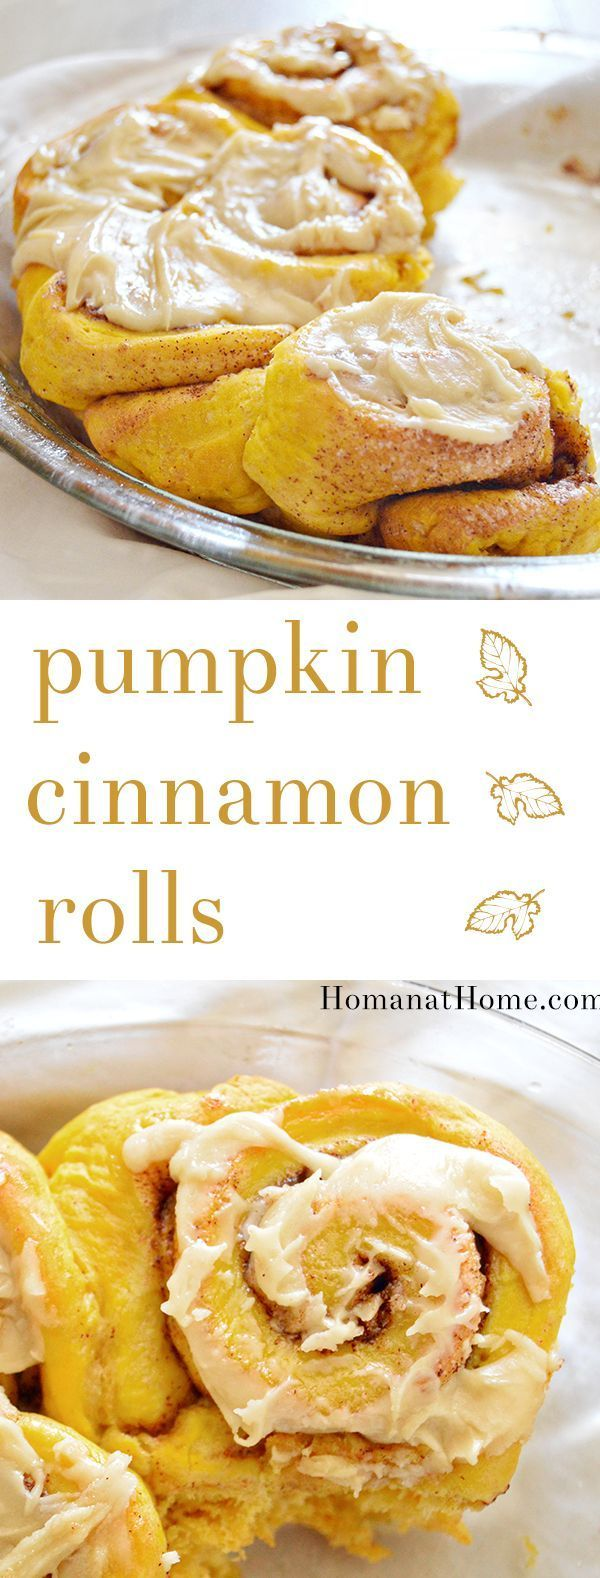 1000+ ideas about Pumpkin Cinnamon Rolls on Pinterest ...